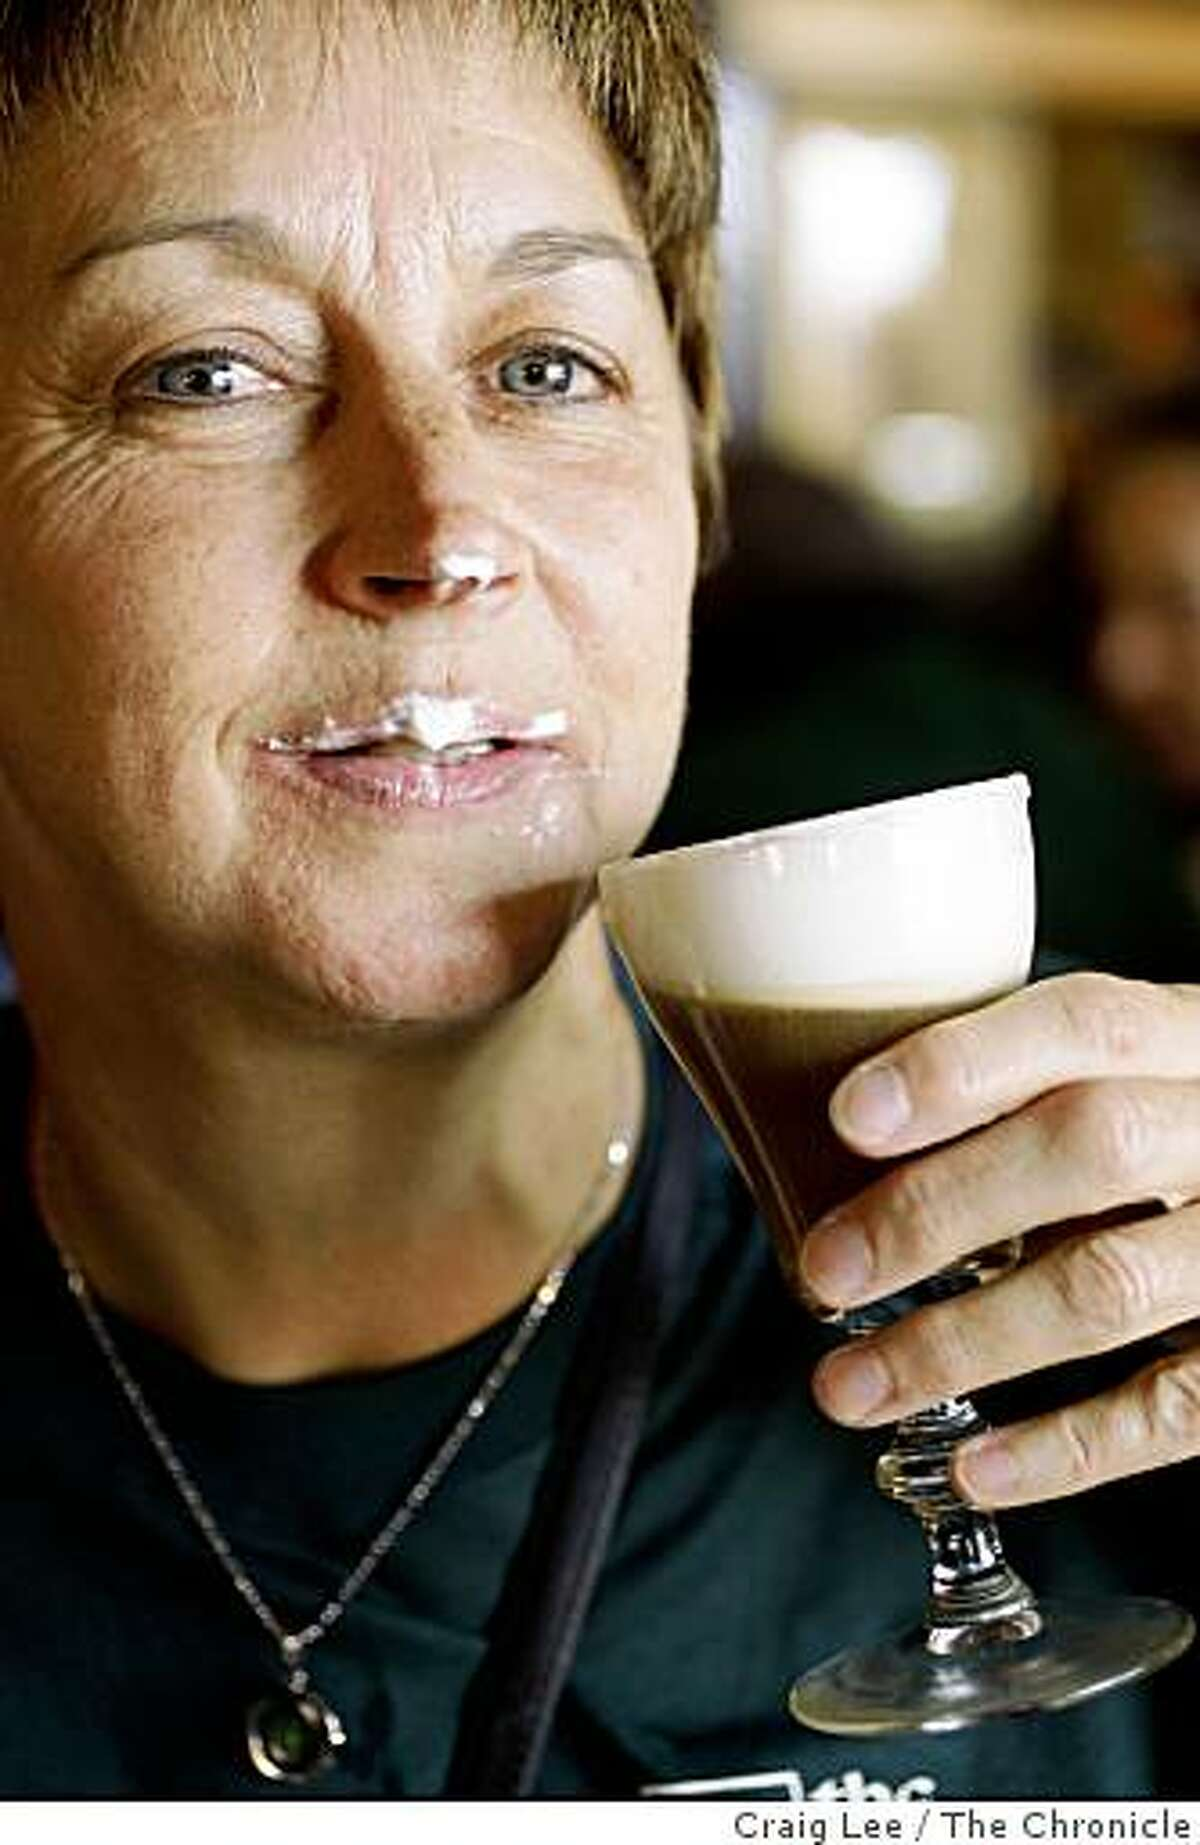 The Buena Vista Cafe celebrating the Irish coffee cocktail's anniversary by making the world's biggest Irish coffee drink, attempting to make it in the Guinness World Records book, in San Francisco, Calif., on November 11, 2008. Mary Metcalf from San Mateo, with a cream mustache, atfer drinking the Irish coffee.